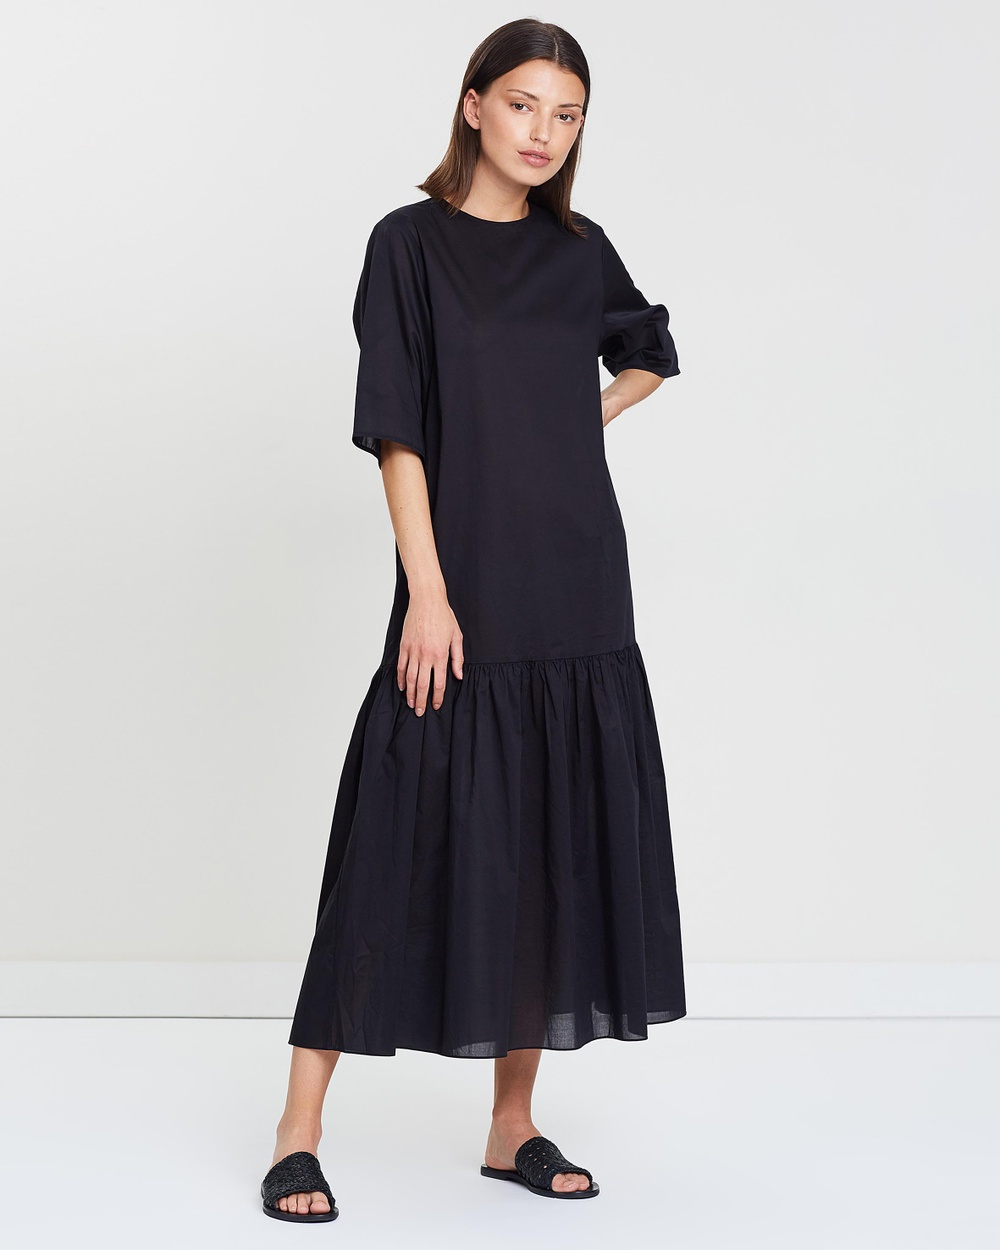 Jac + Jack Black Ansley Dress